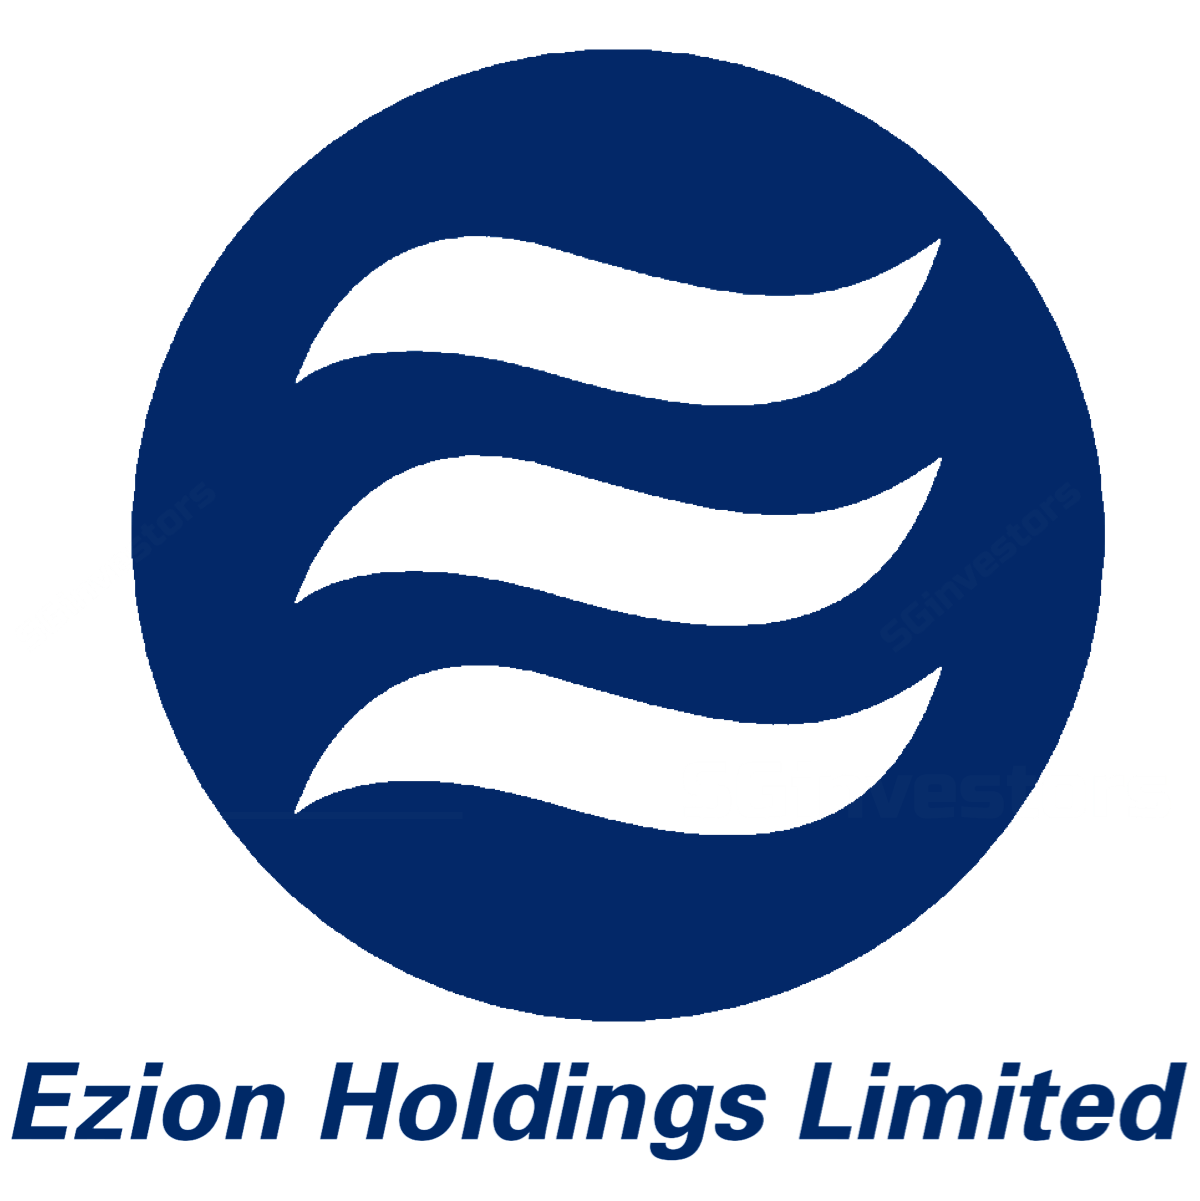 Ezion Holdings - CIMB Research 2017-03-28: Assuming full control of 4 rigs